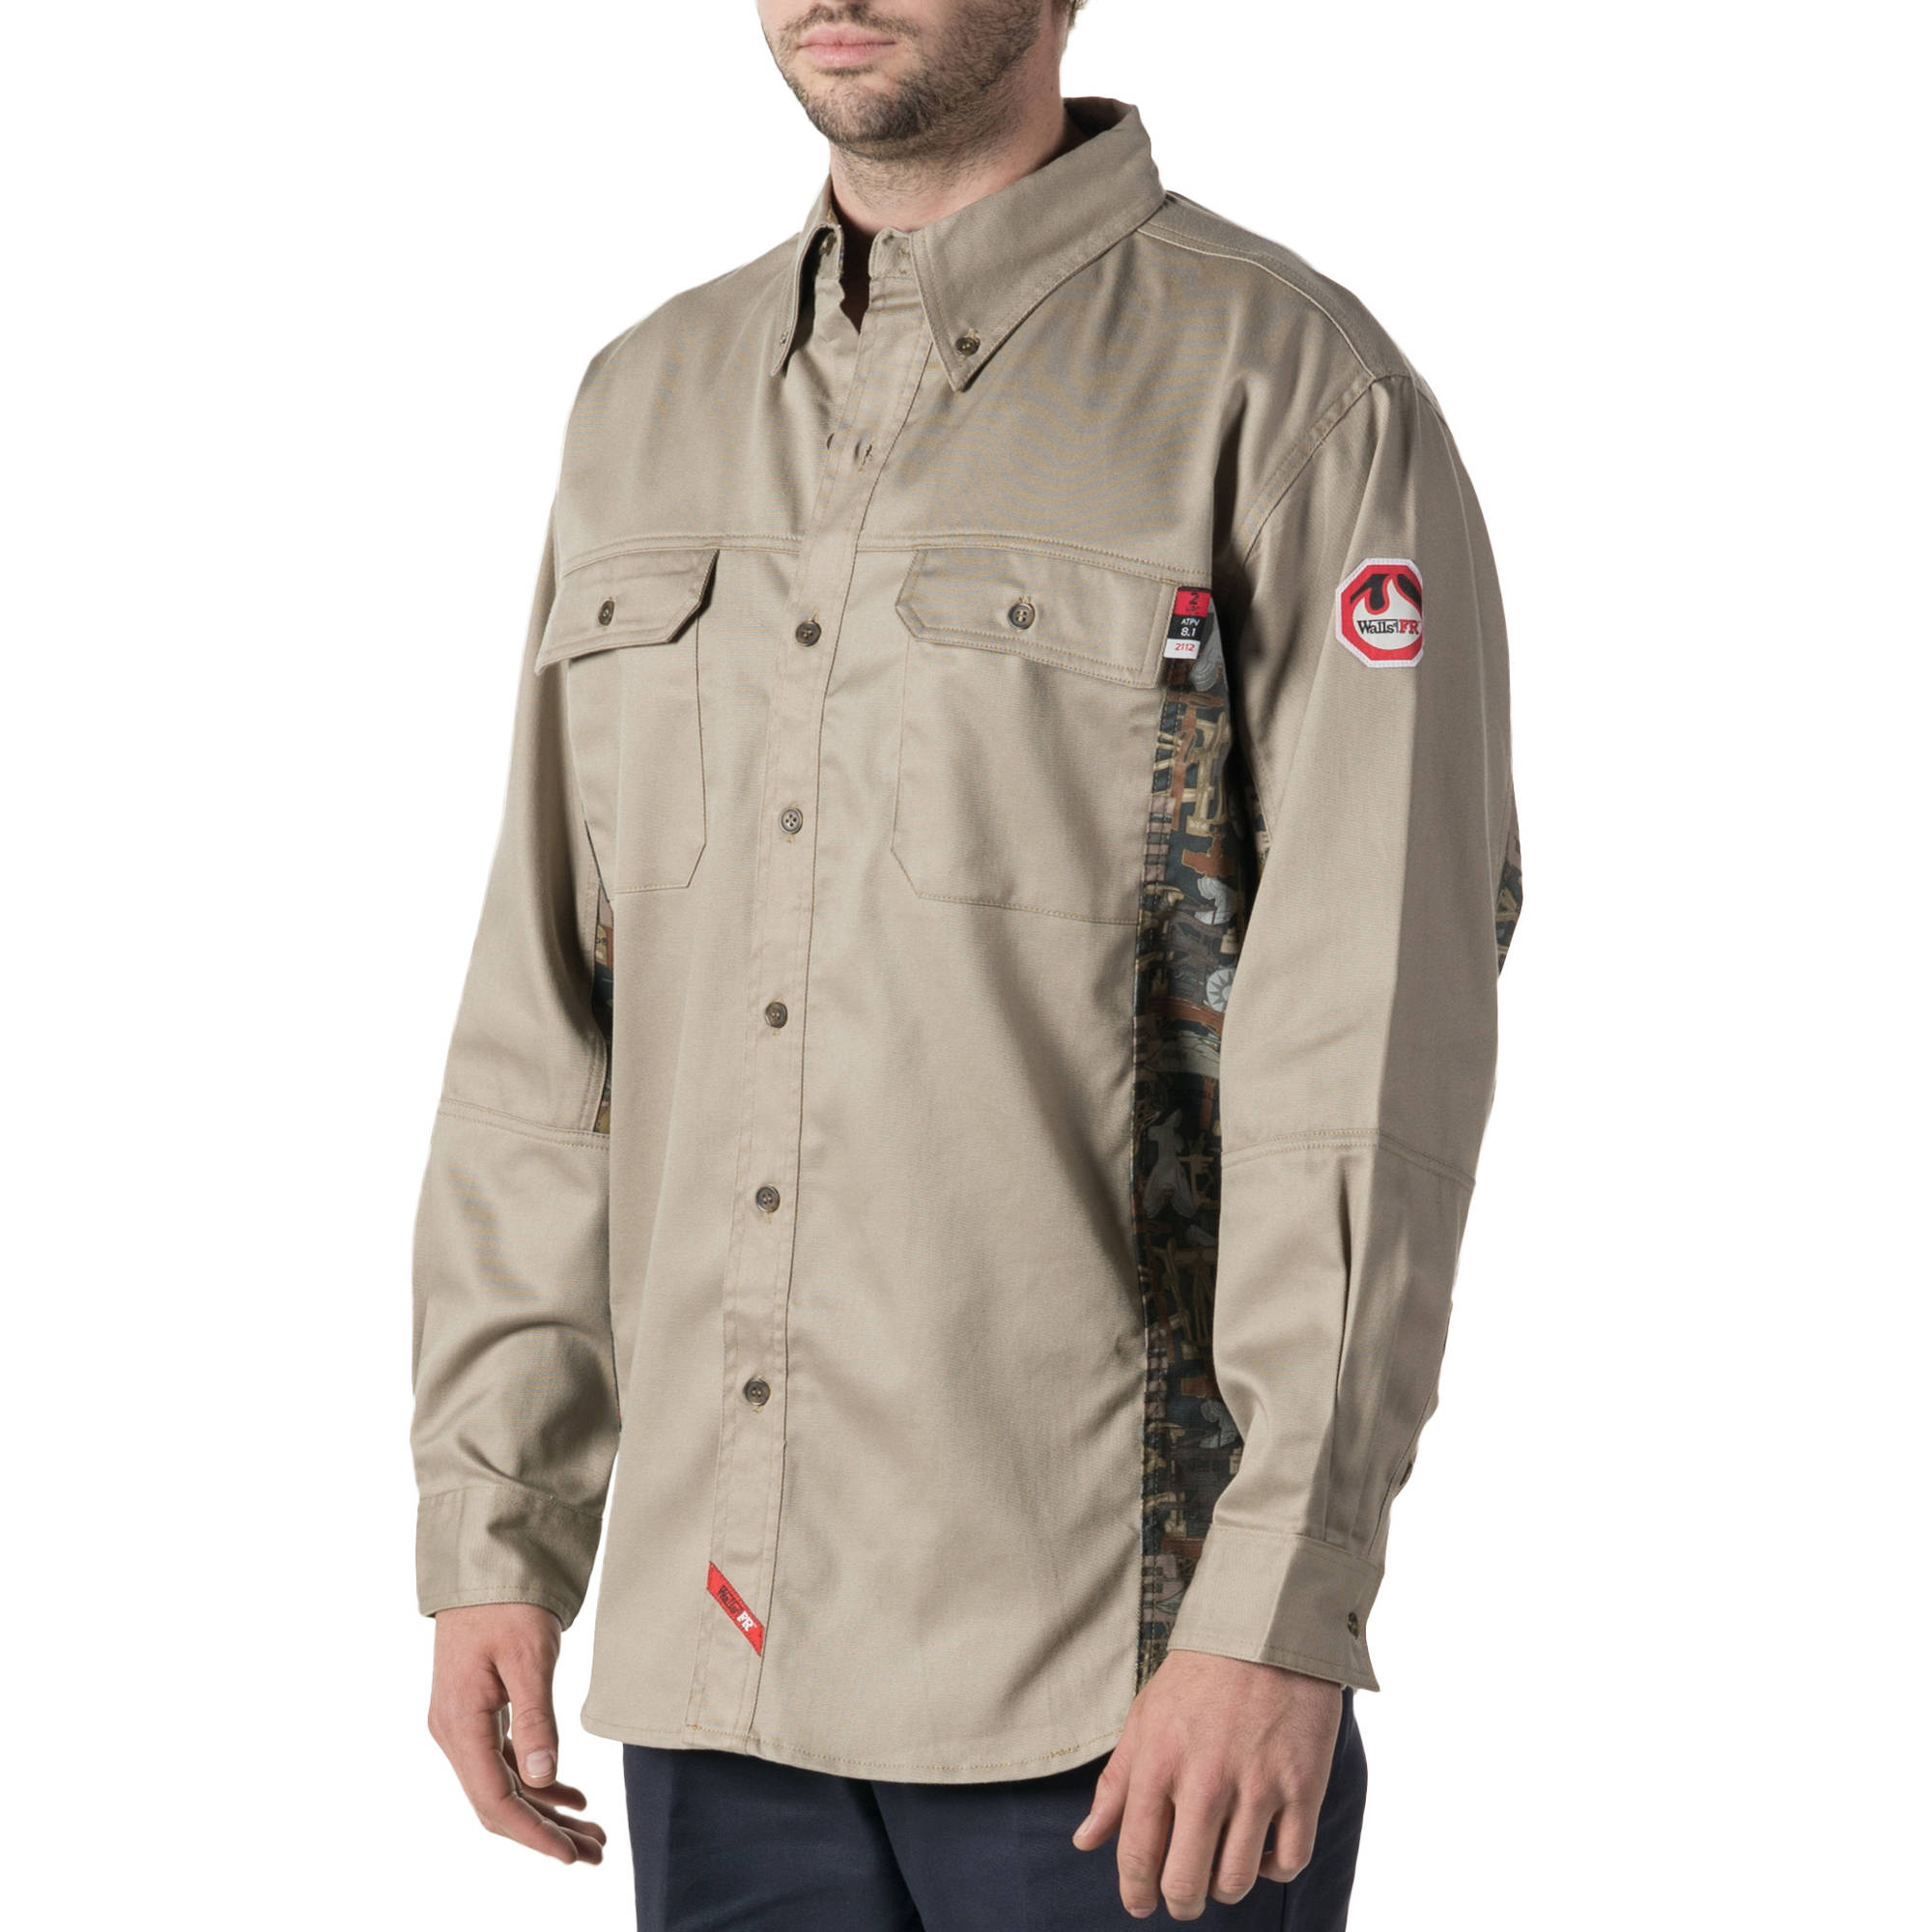 Walls FR Men's Flame Resistant Oilfield Camo Work Shirt, HRC Level 2